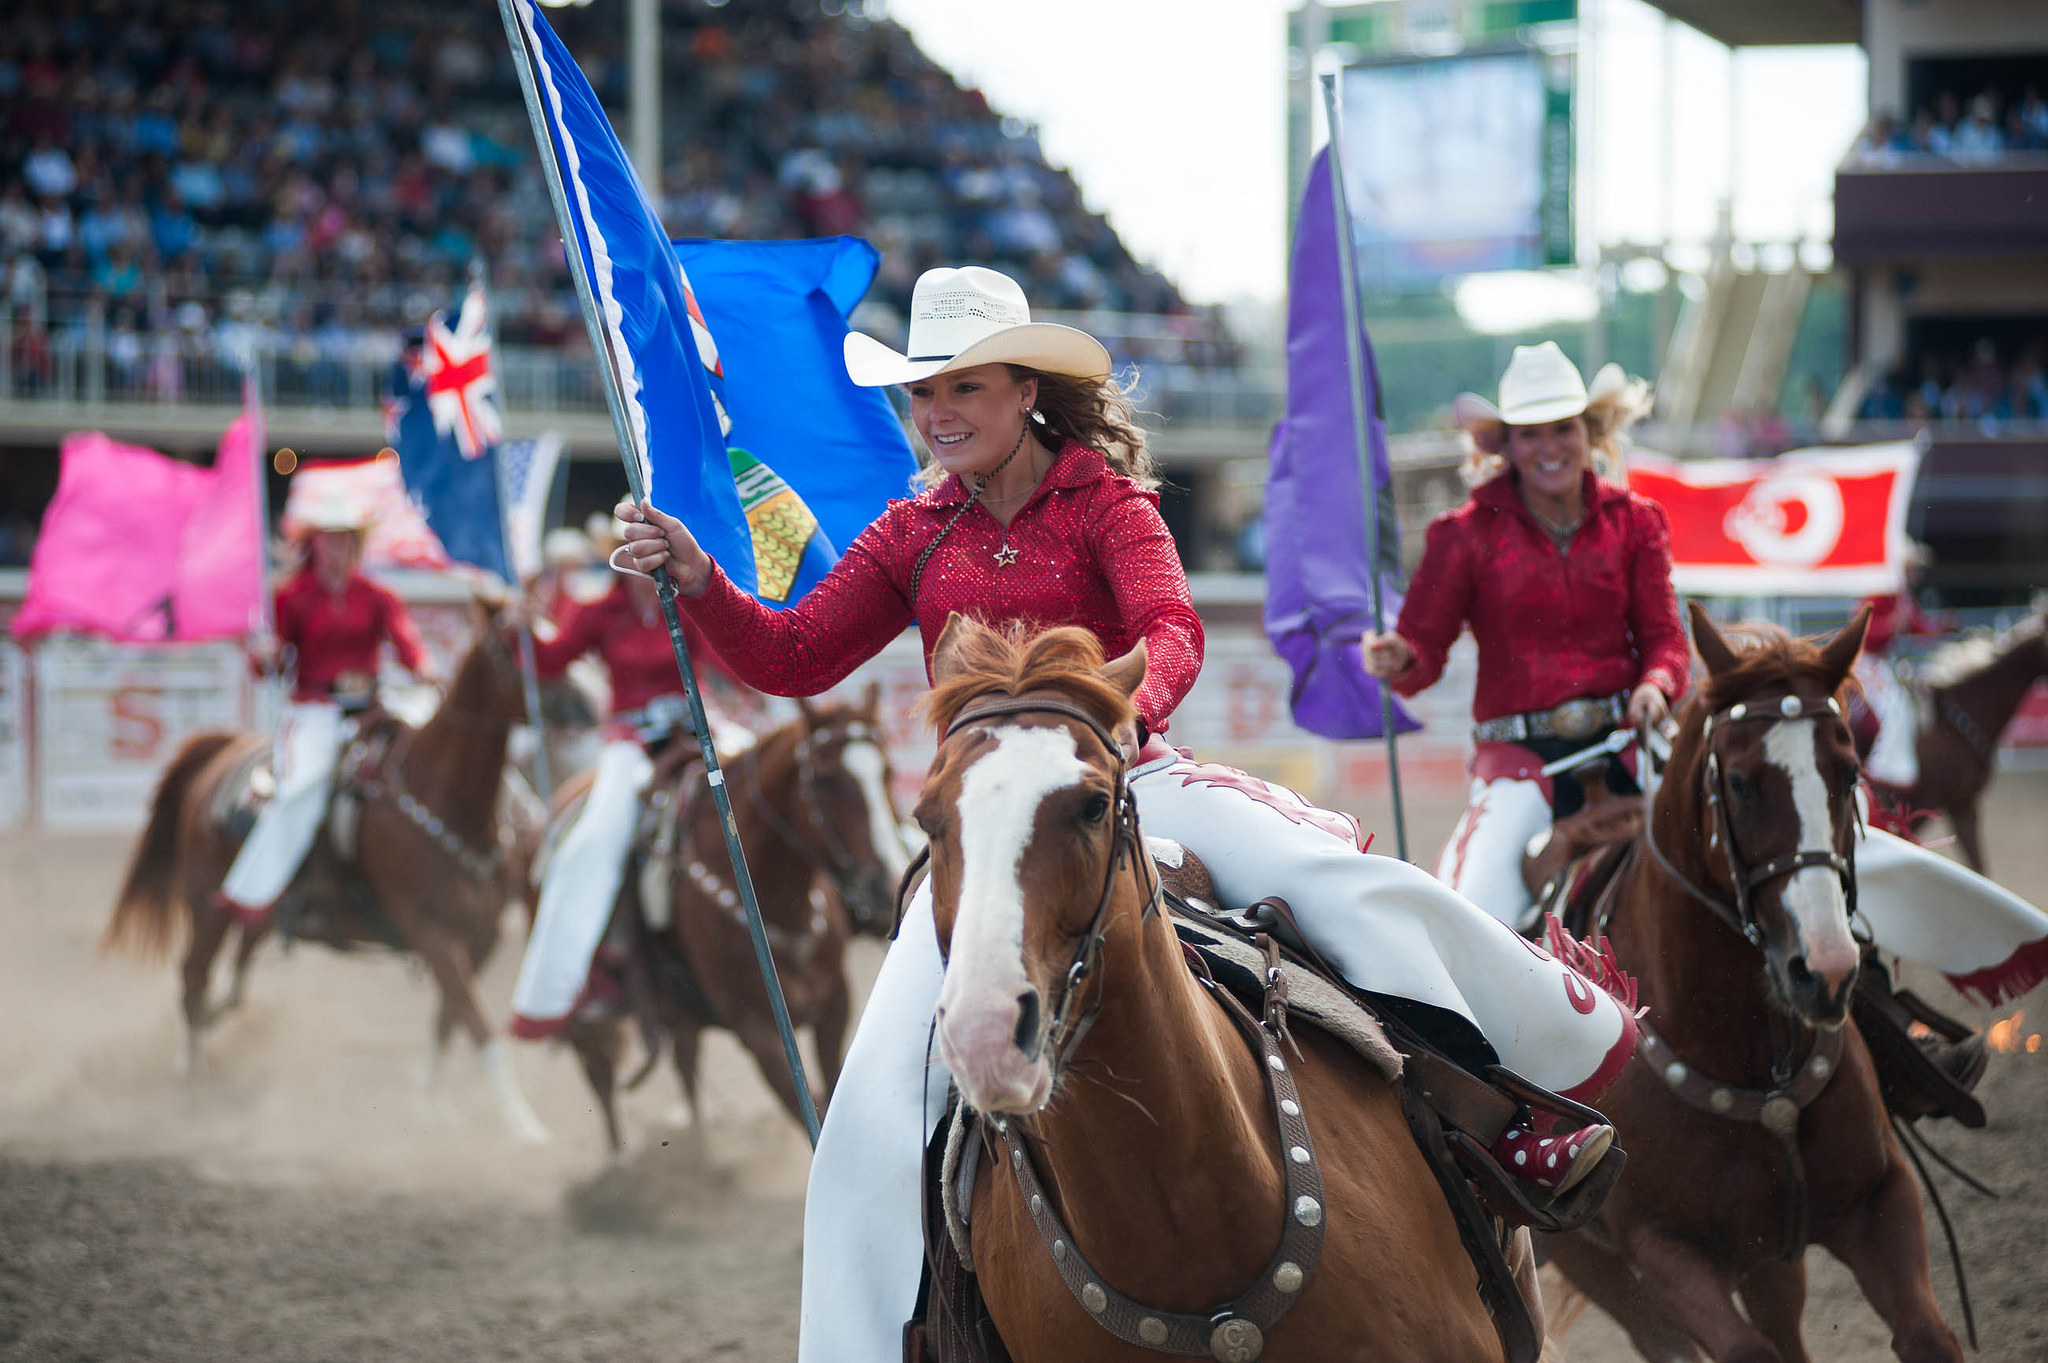 Calgary Stampede Comes To Toronto And I Want To Go To